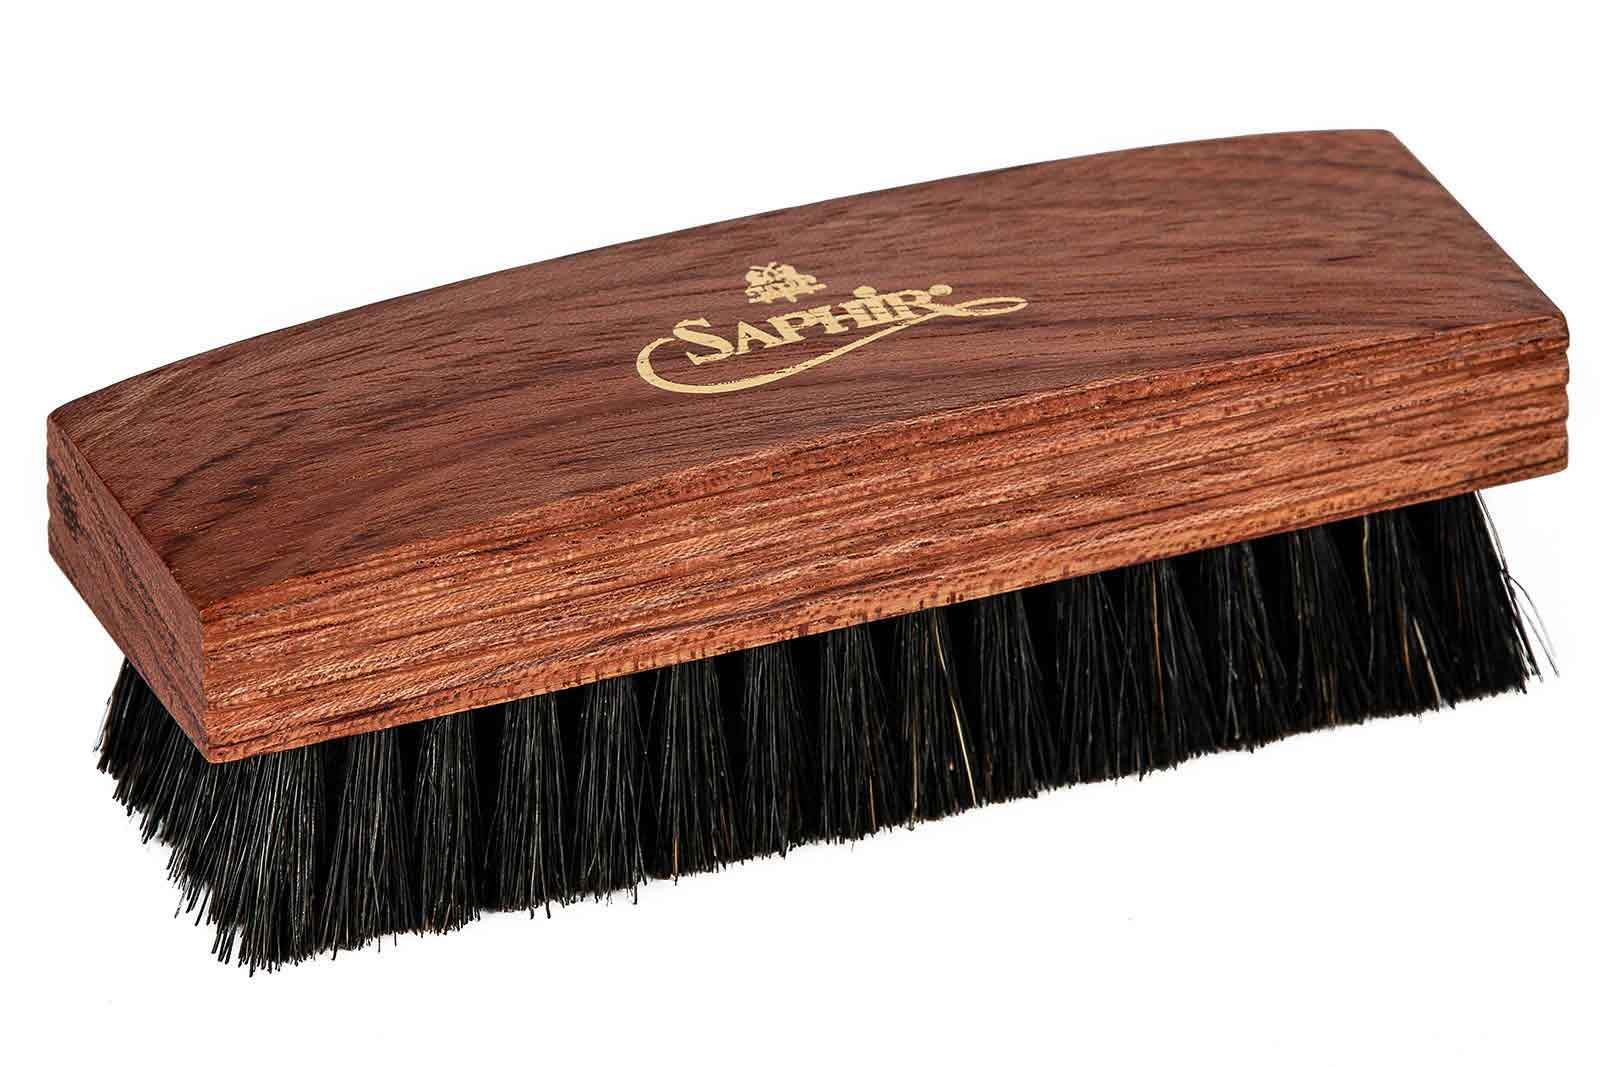 Polishing Brush - Saphir Médaille d'Or 1925 - Bootblack